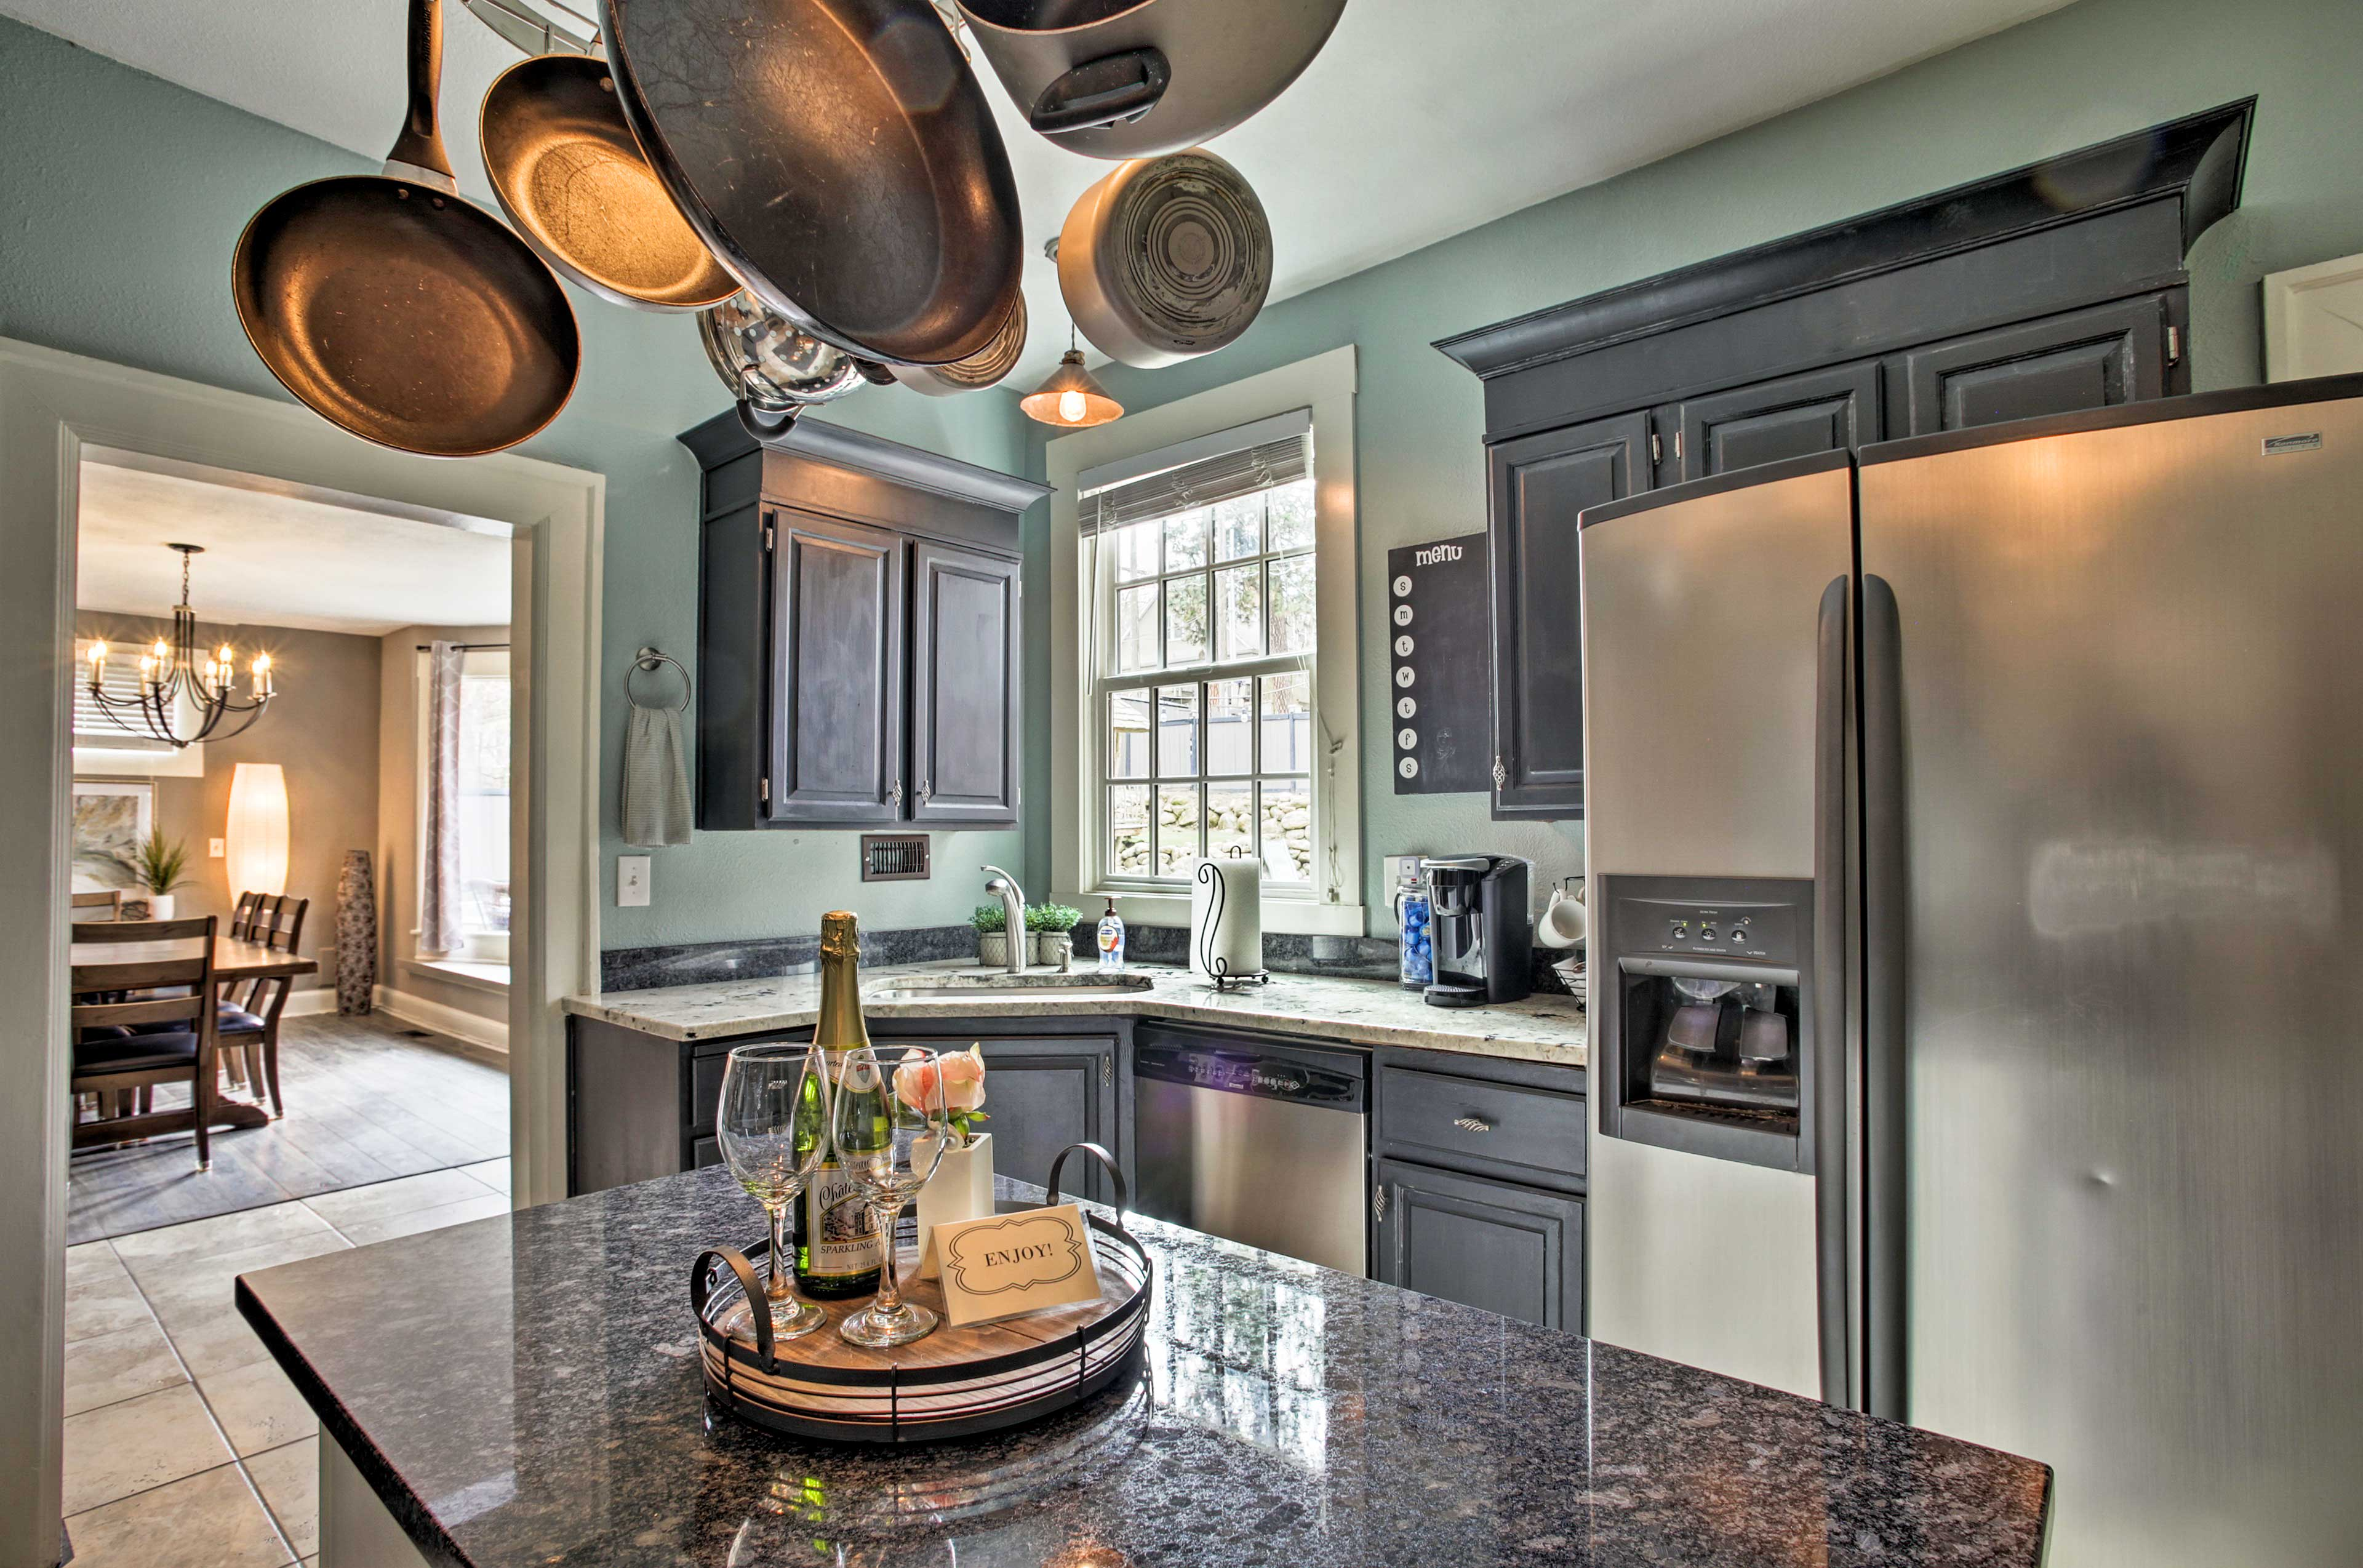 This space is fully equipped with stainless steel appliances.